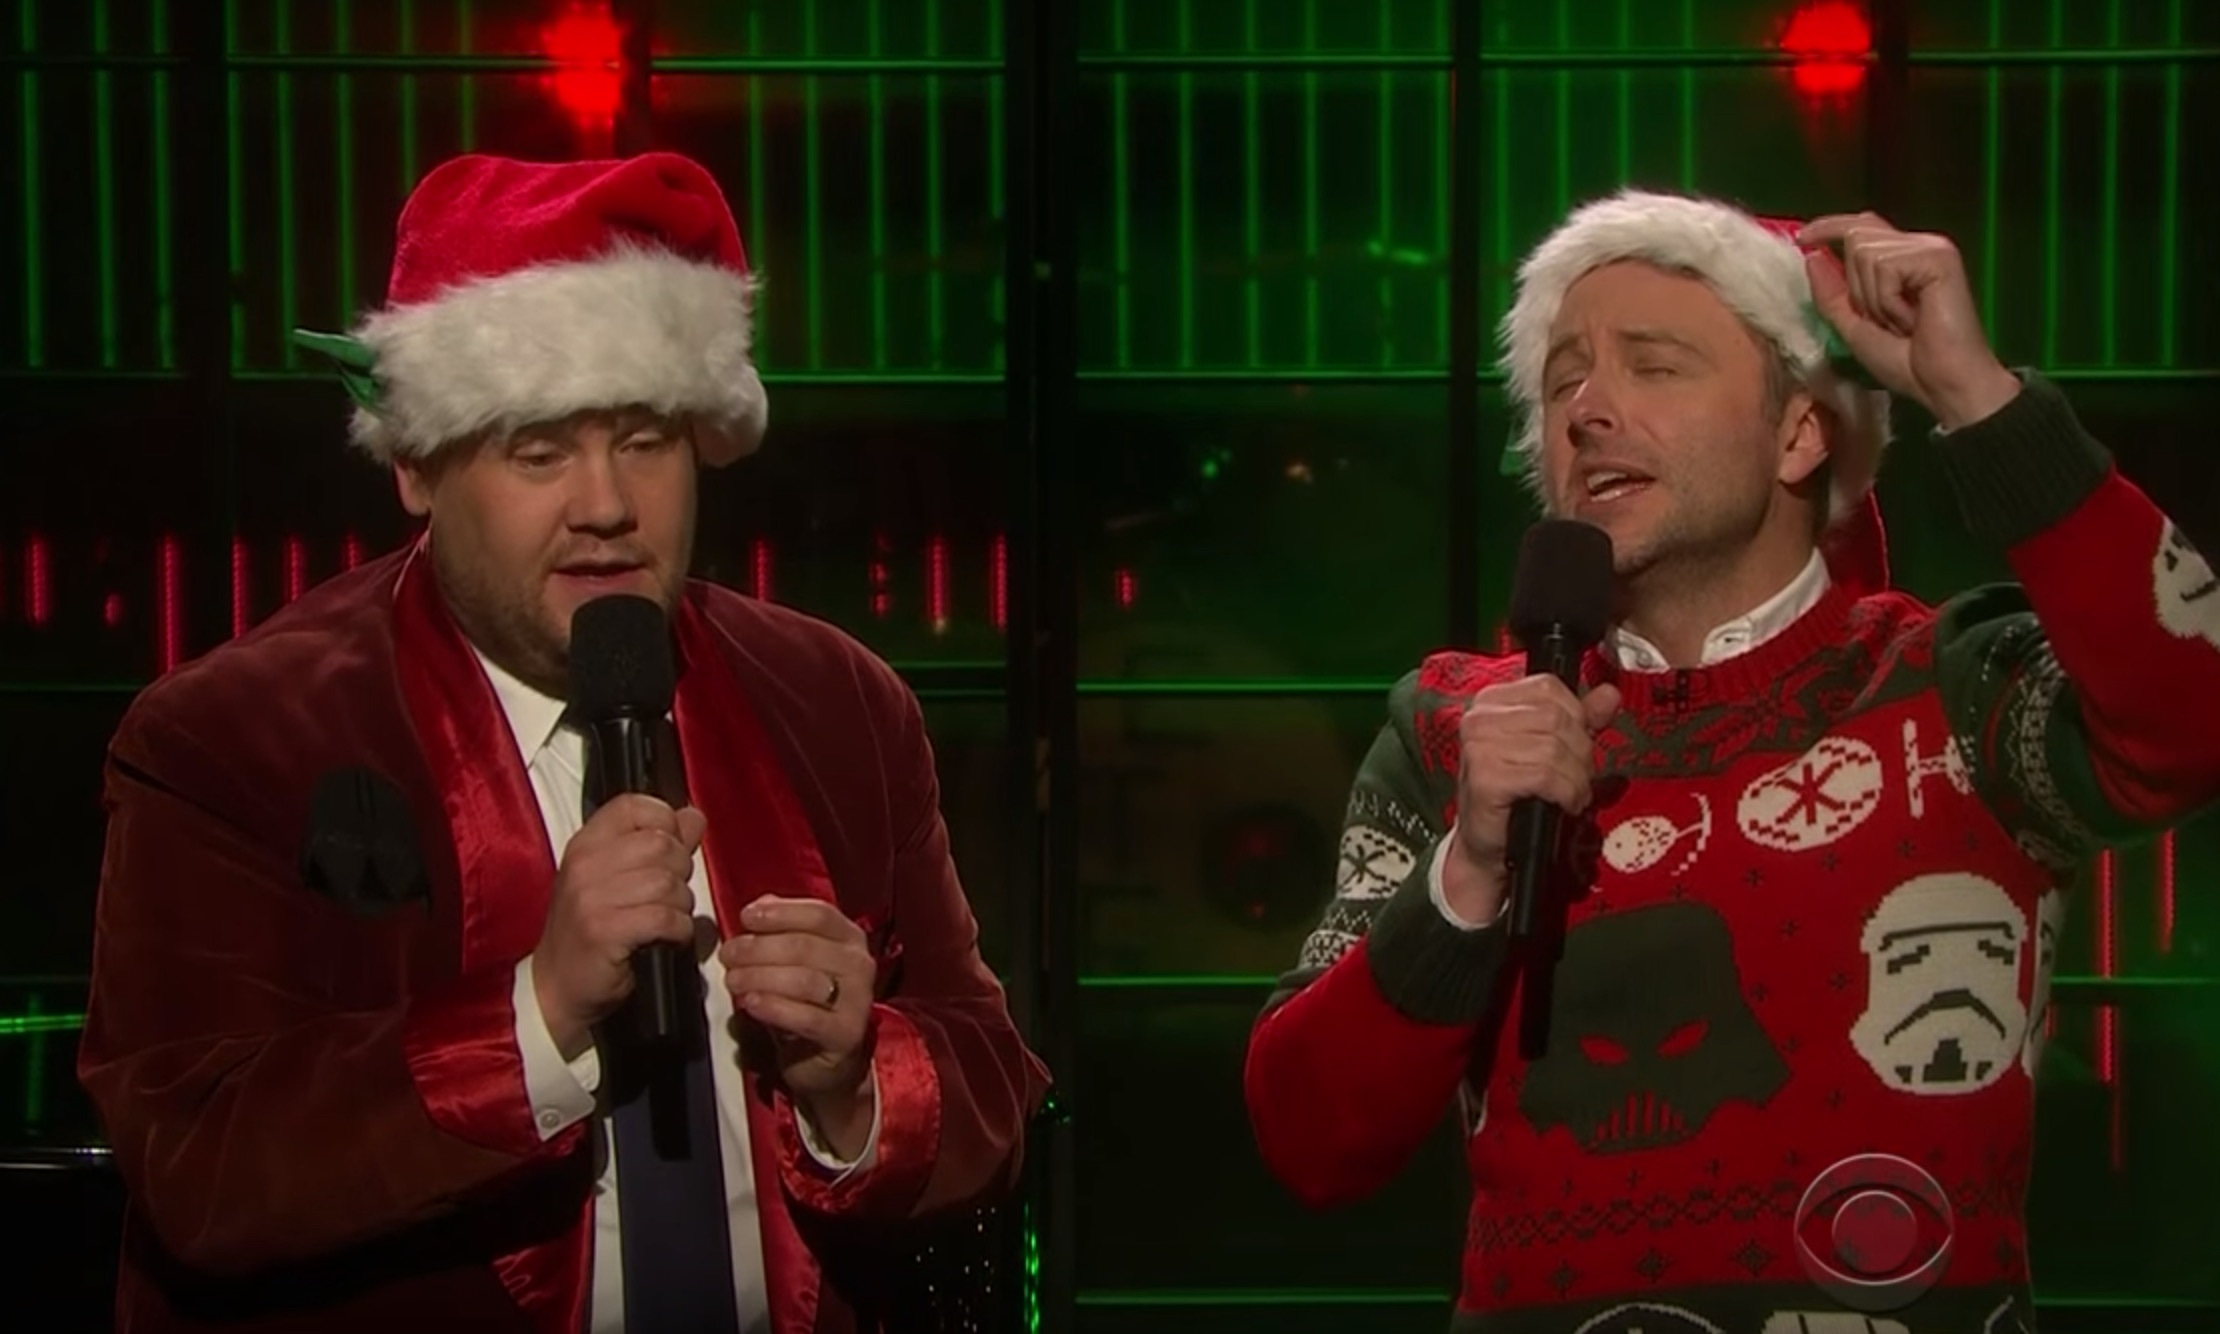 James Corden and Chris Hardwick performed the 'Star Wars' Christmas song we never knew we needed